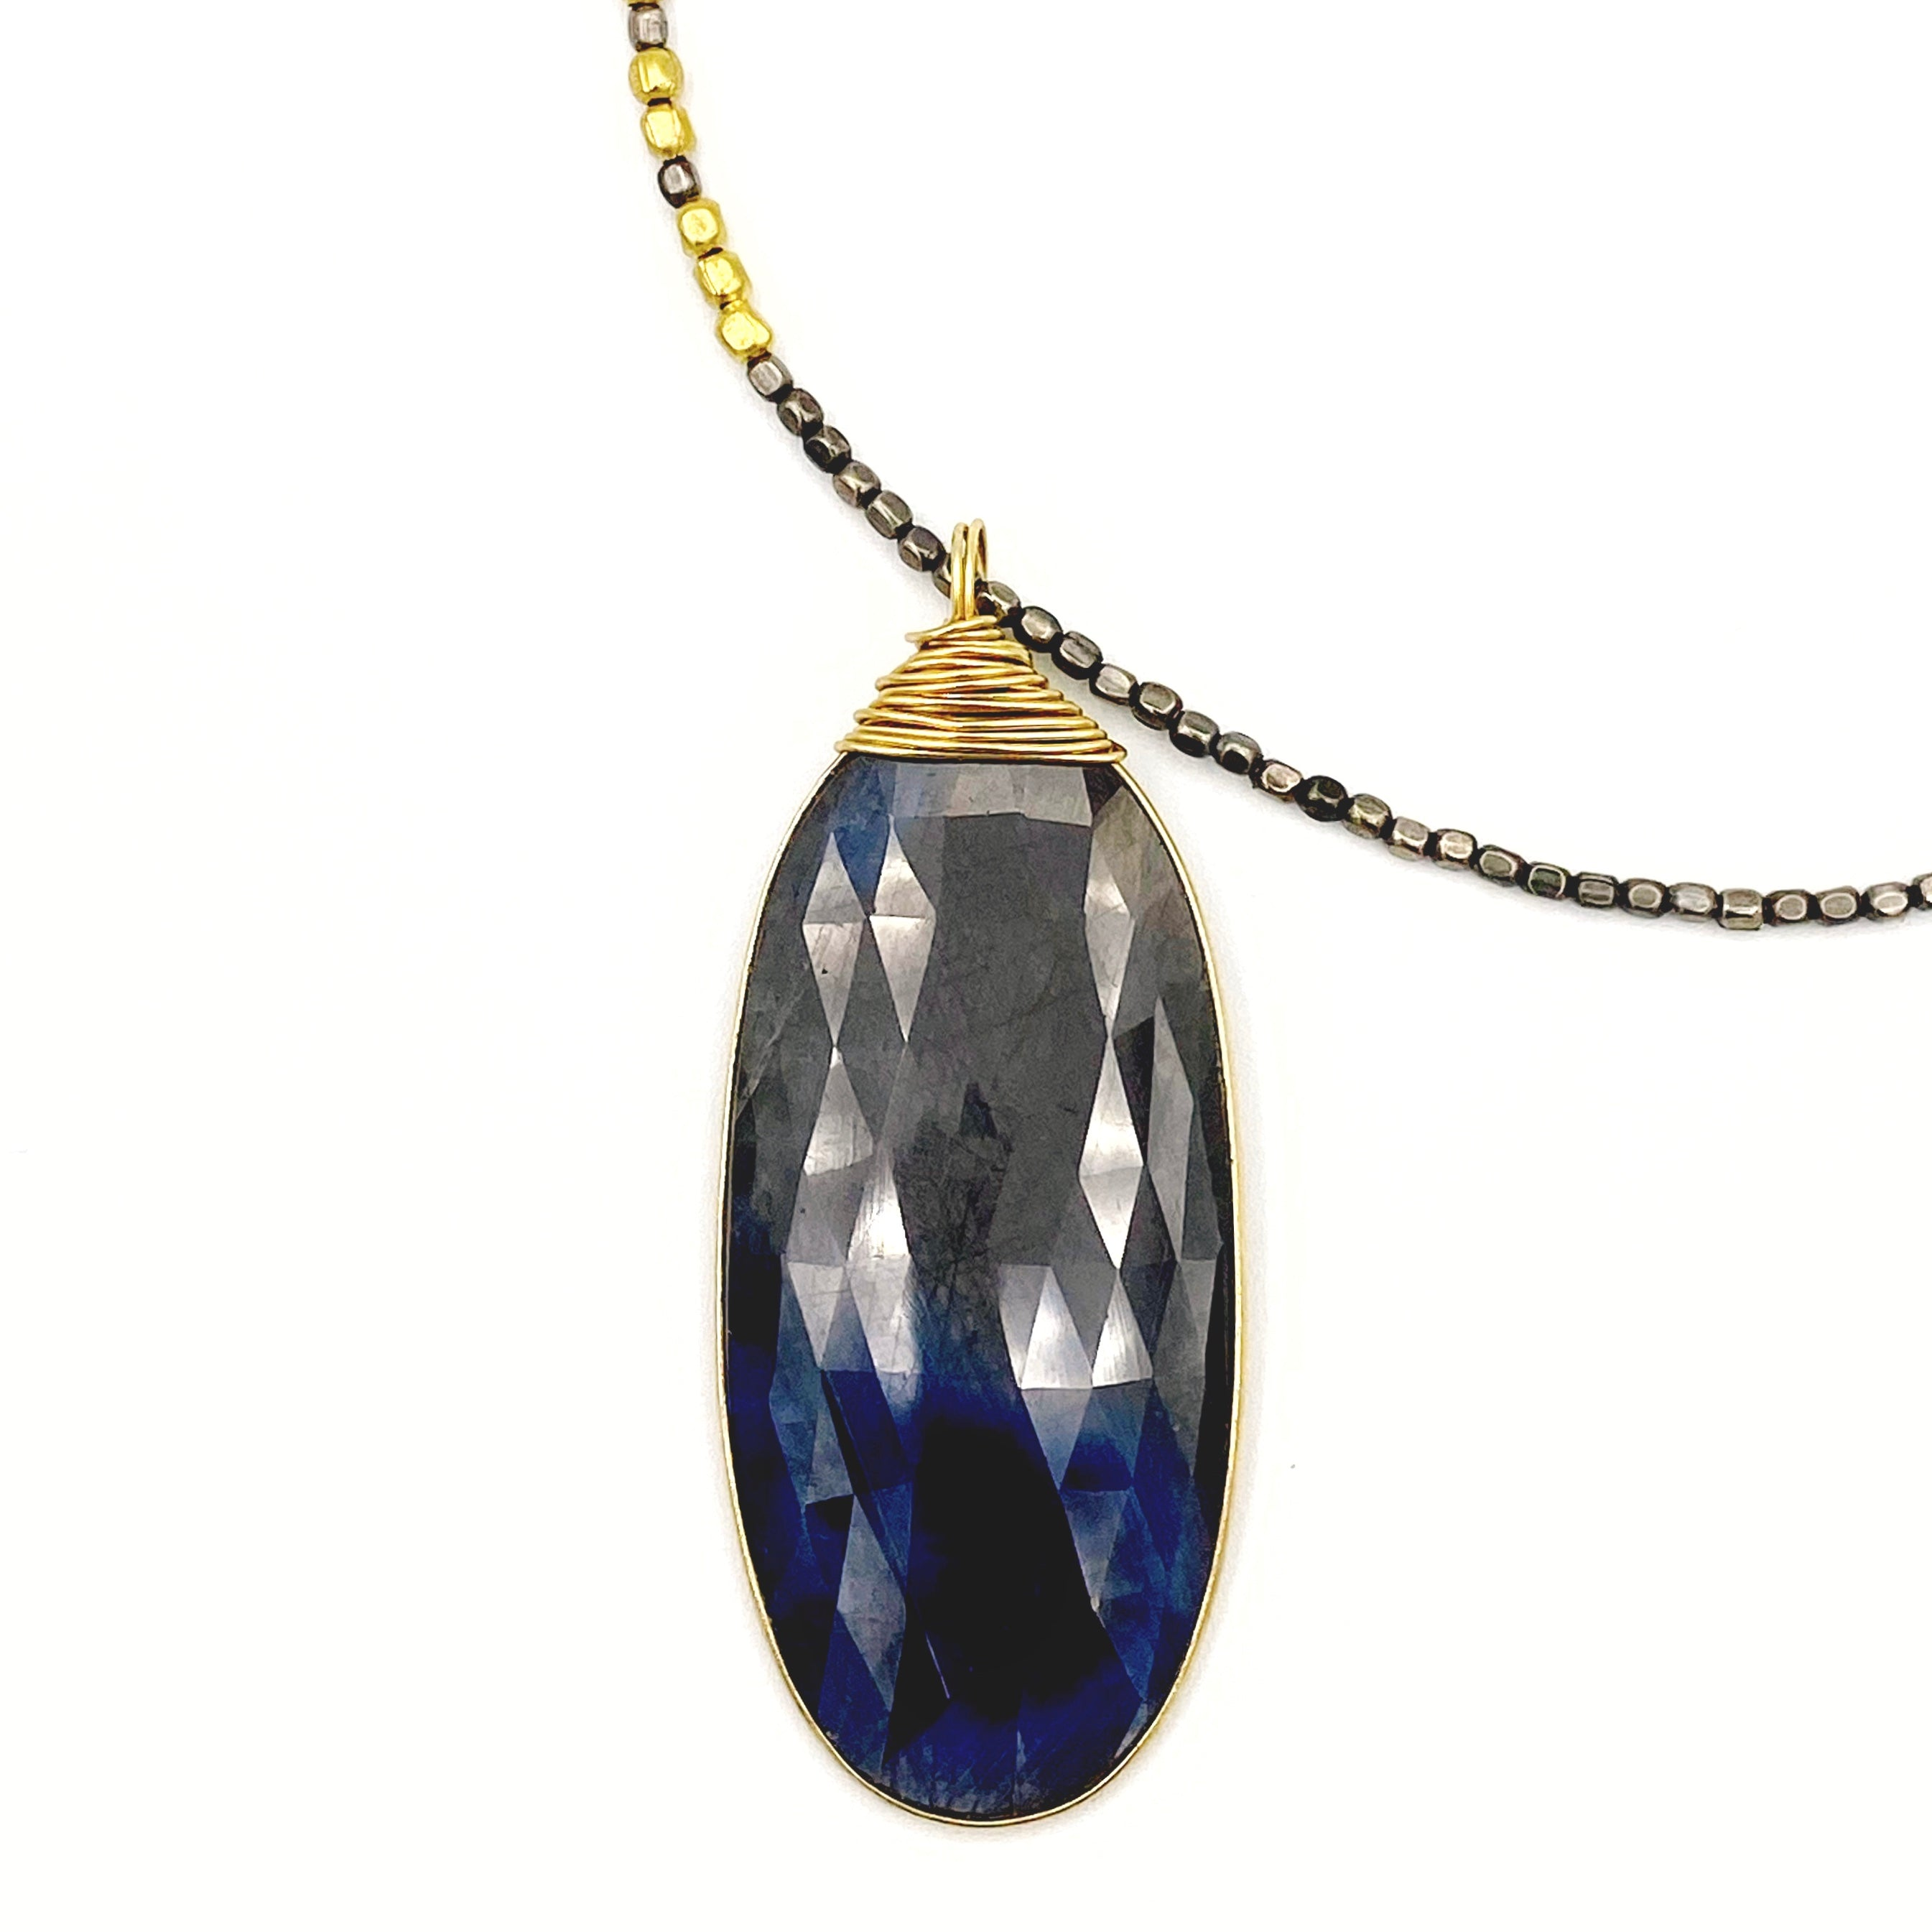 Madrona OOAK Sapphire Pendant Necklace